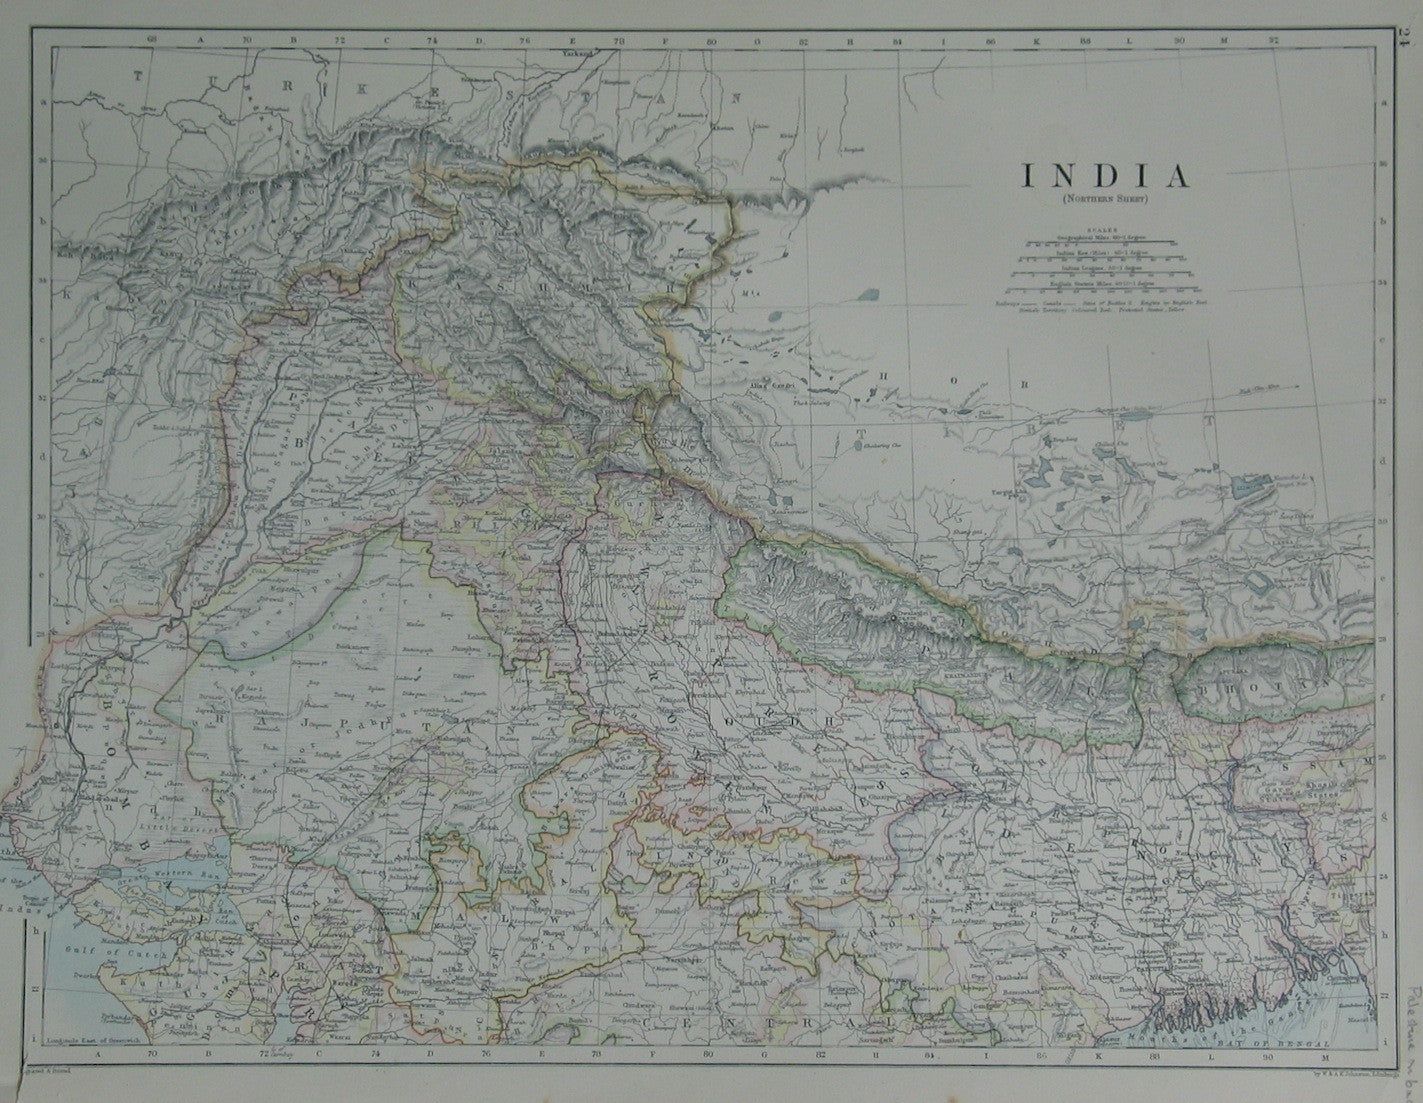 India (Northern Sheet)